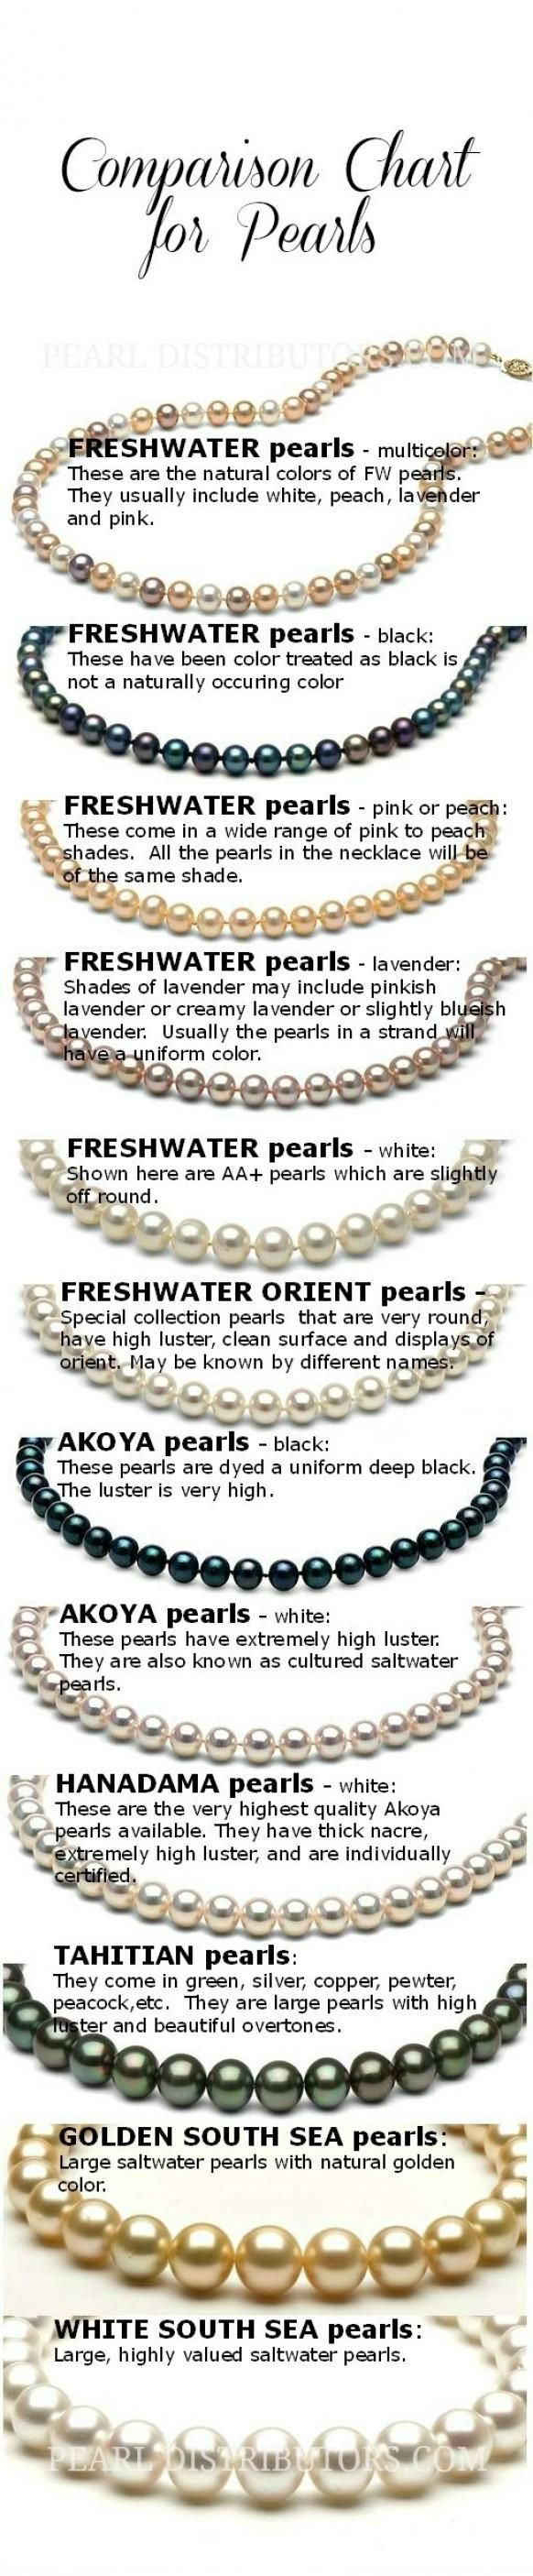 Weddbook is a content discovery engine mostly specialized on wedding concept. You can collect images, videos or articles you discovered  organize them, add your own ideas to your collections and share with other people | Pearls at a Glance! Compare pearl types with this easy comparison chart. #compare pearls #pearls